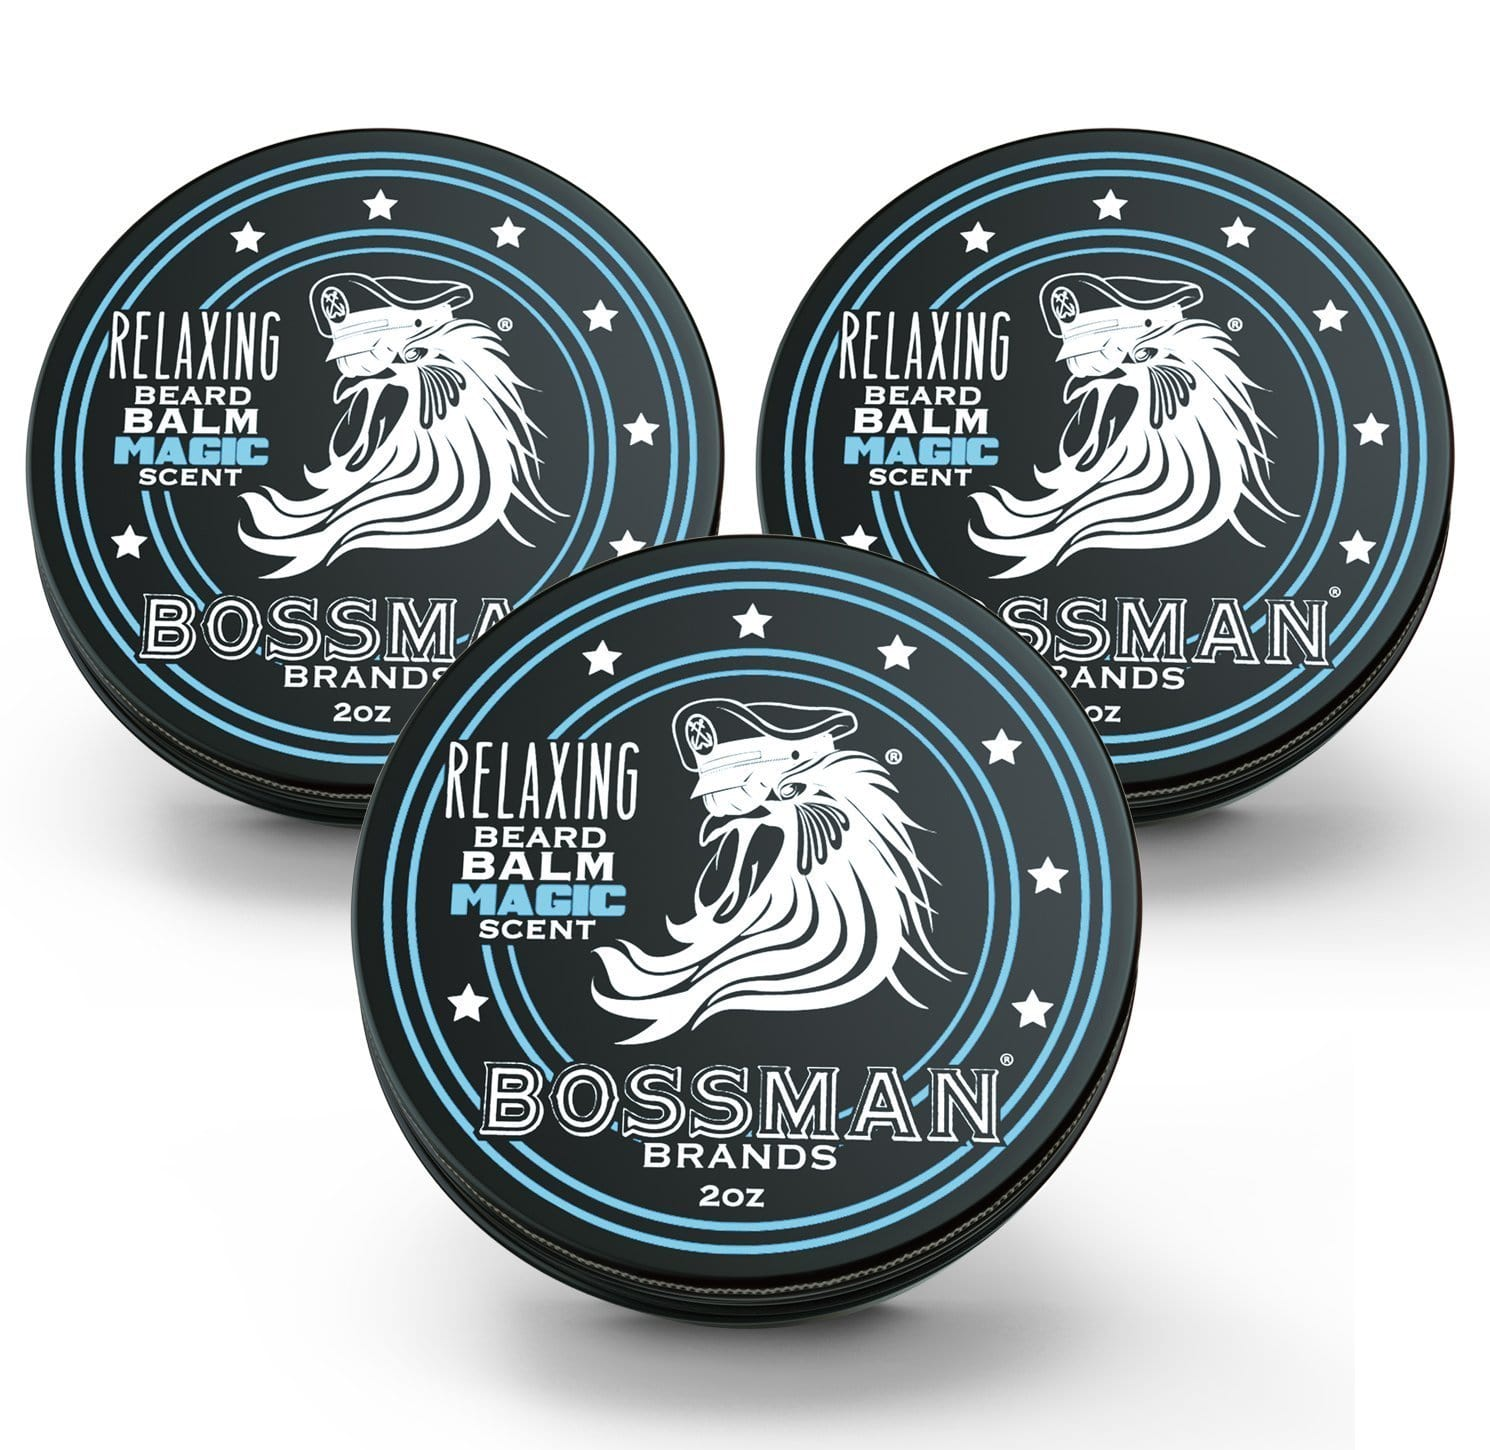 Bossman Relaxing Beard Balm - Magic Scent 3 Pack